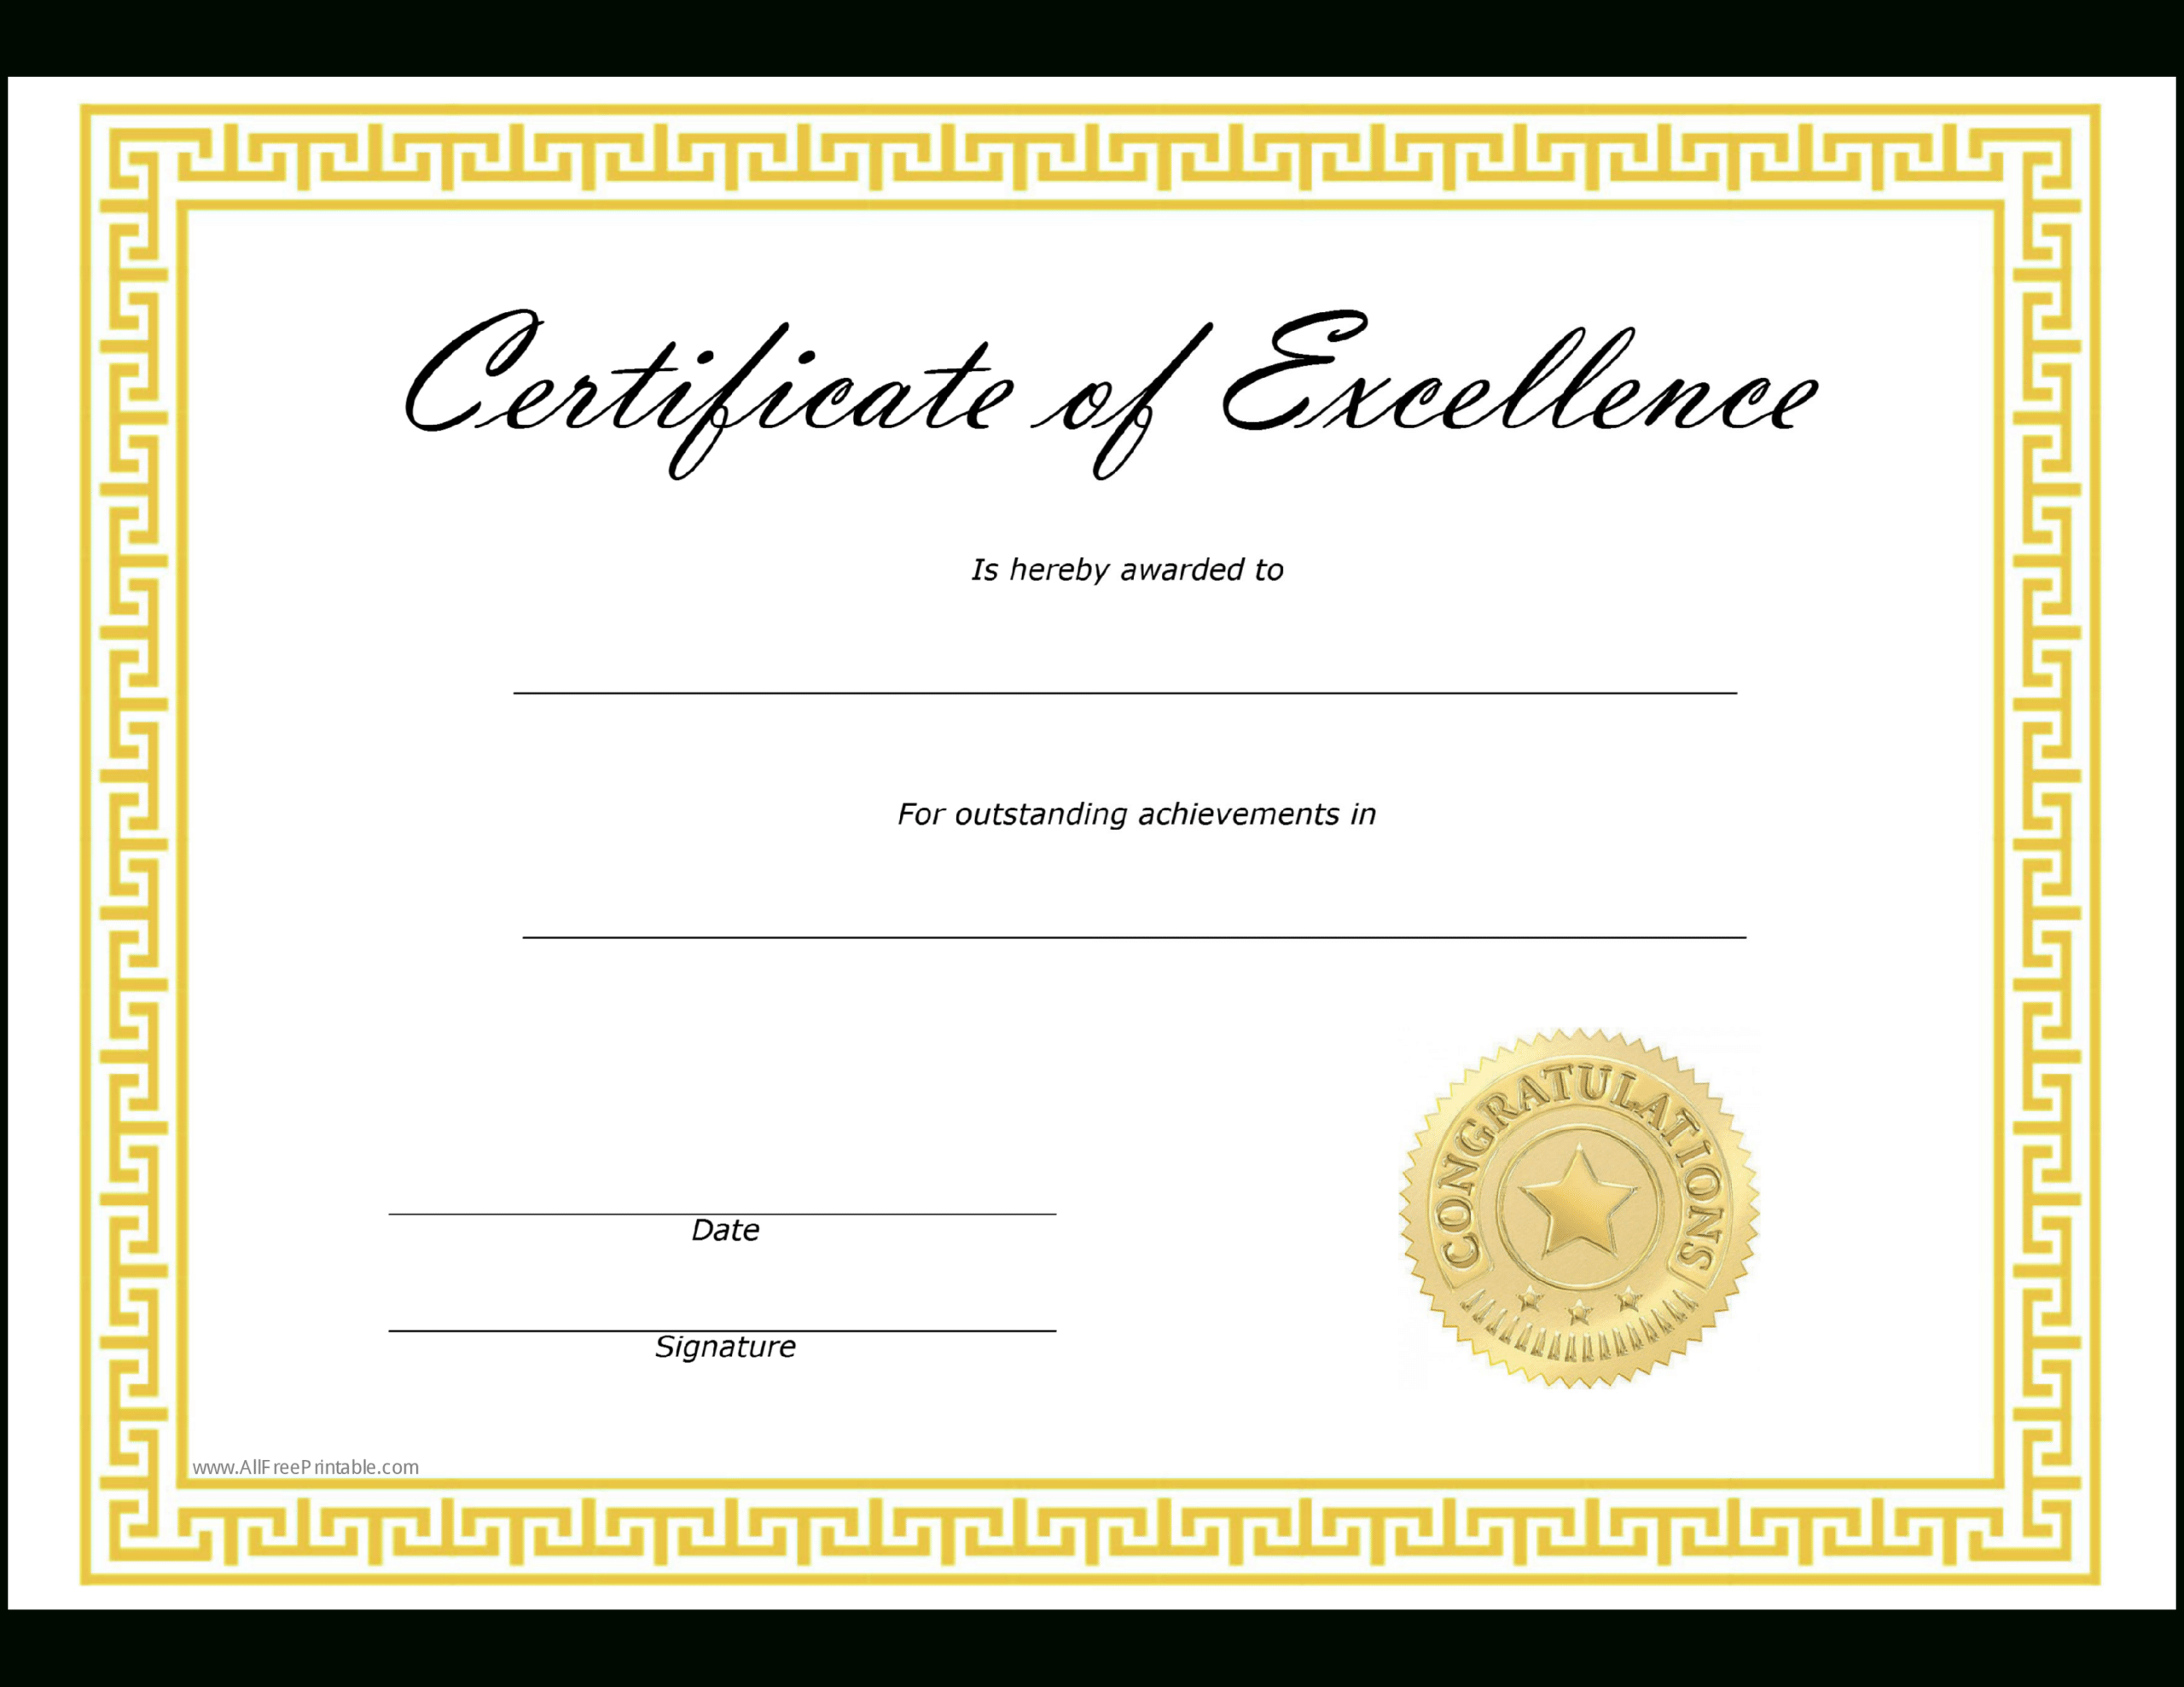 Certificates Of Excellence Templates - Zohre Pertaining To Certificate Of Excellence Template Free Download